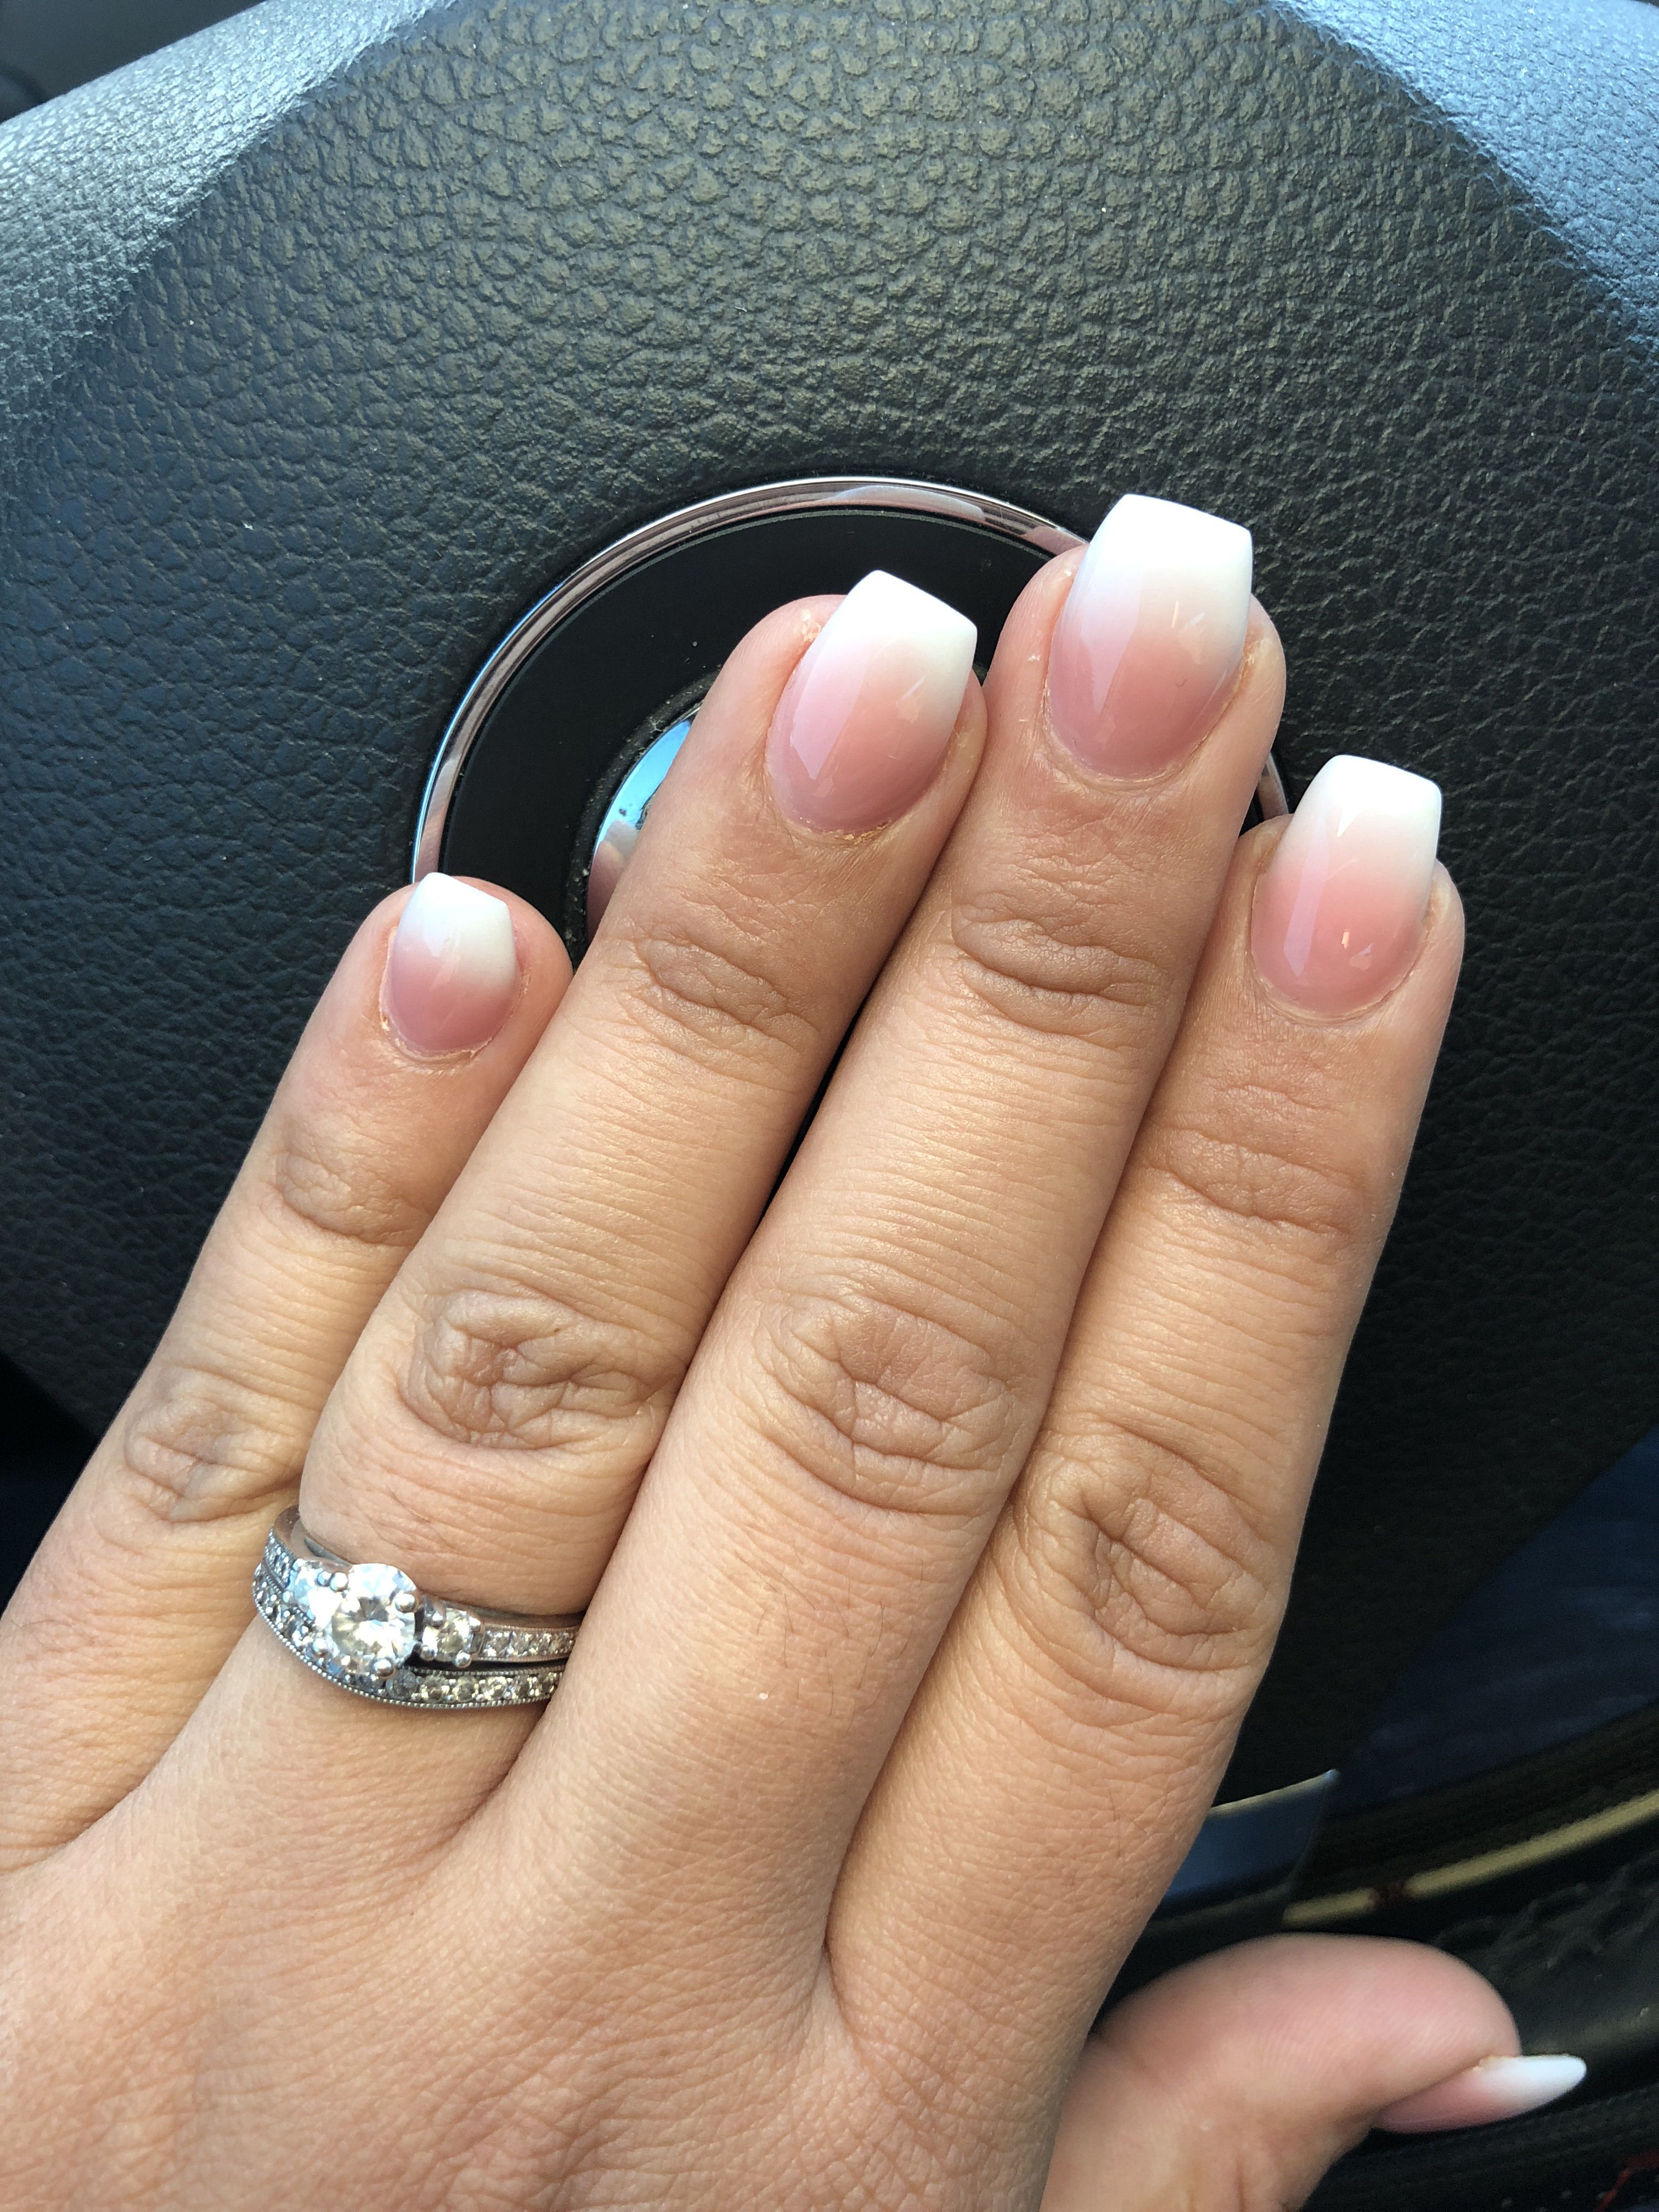 French Ombre Acrylic Nail Shapes Coffin Shape Nails Ombre French Nails